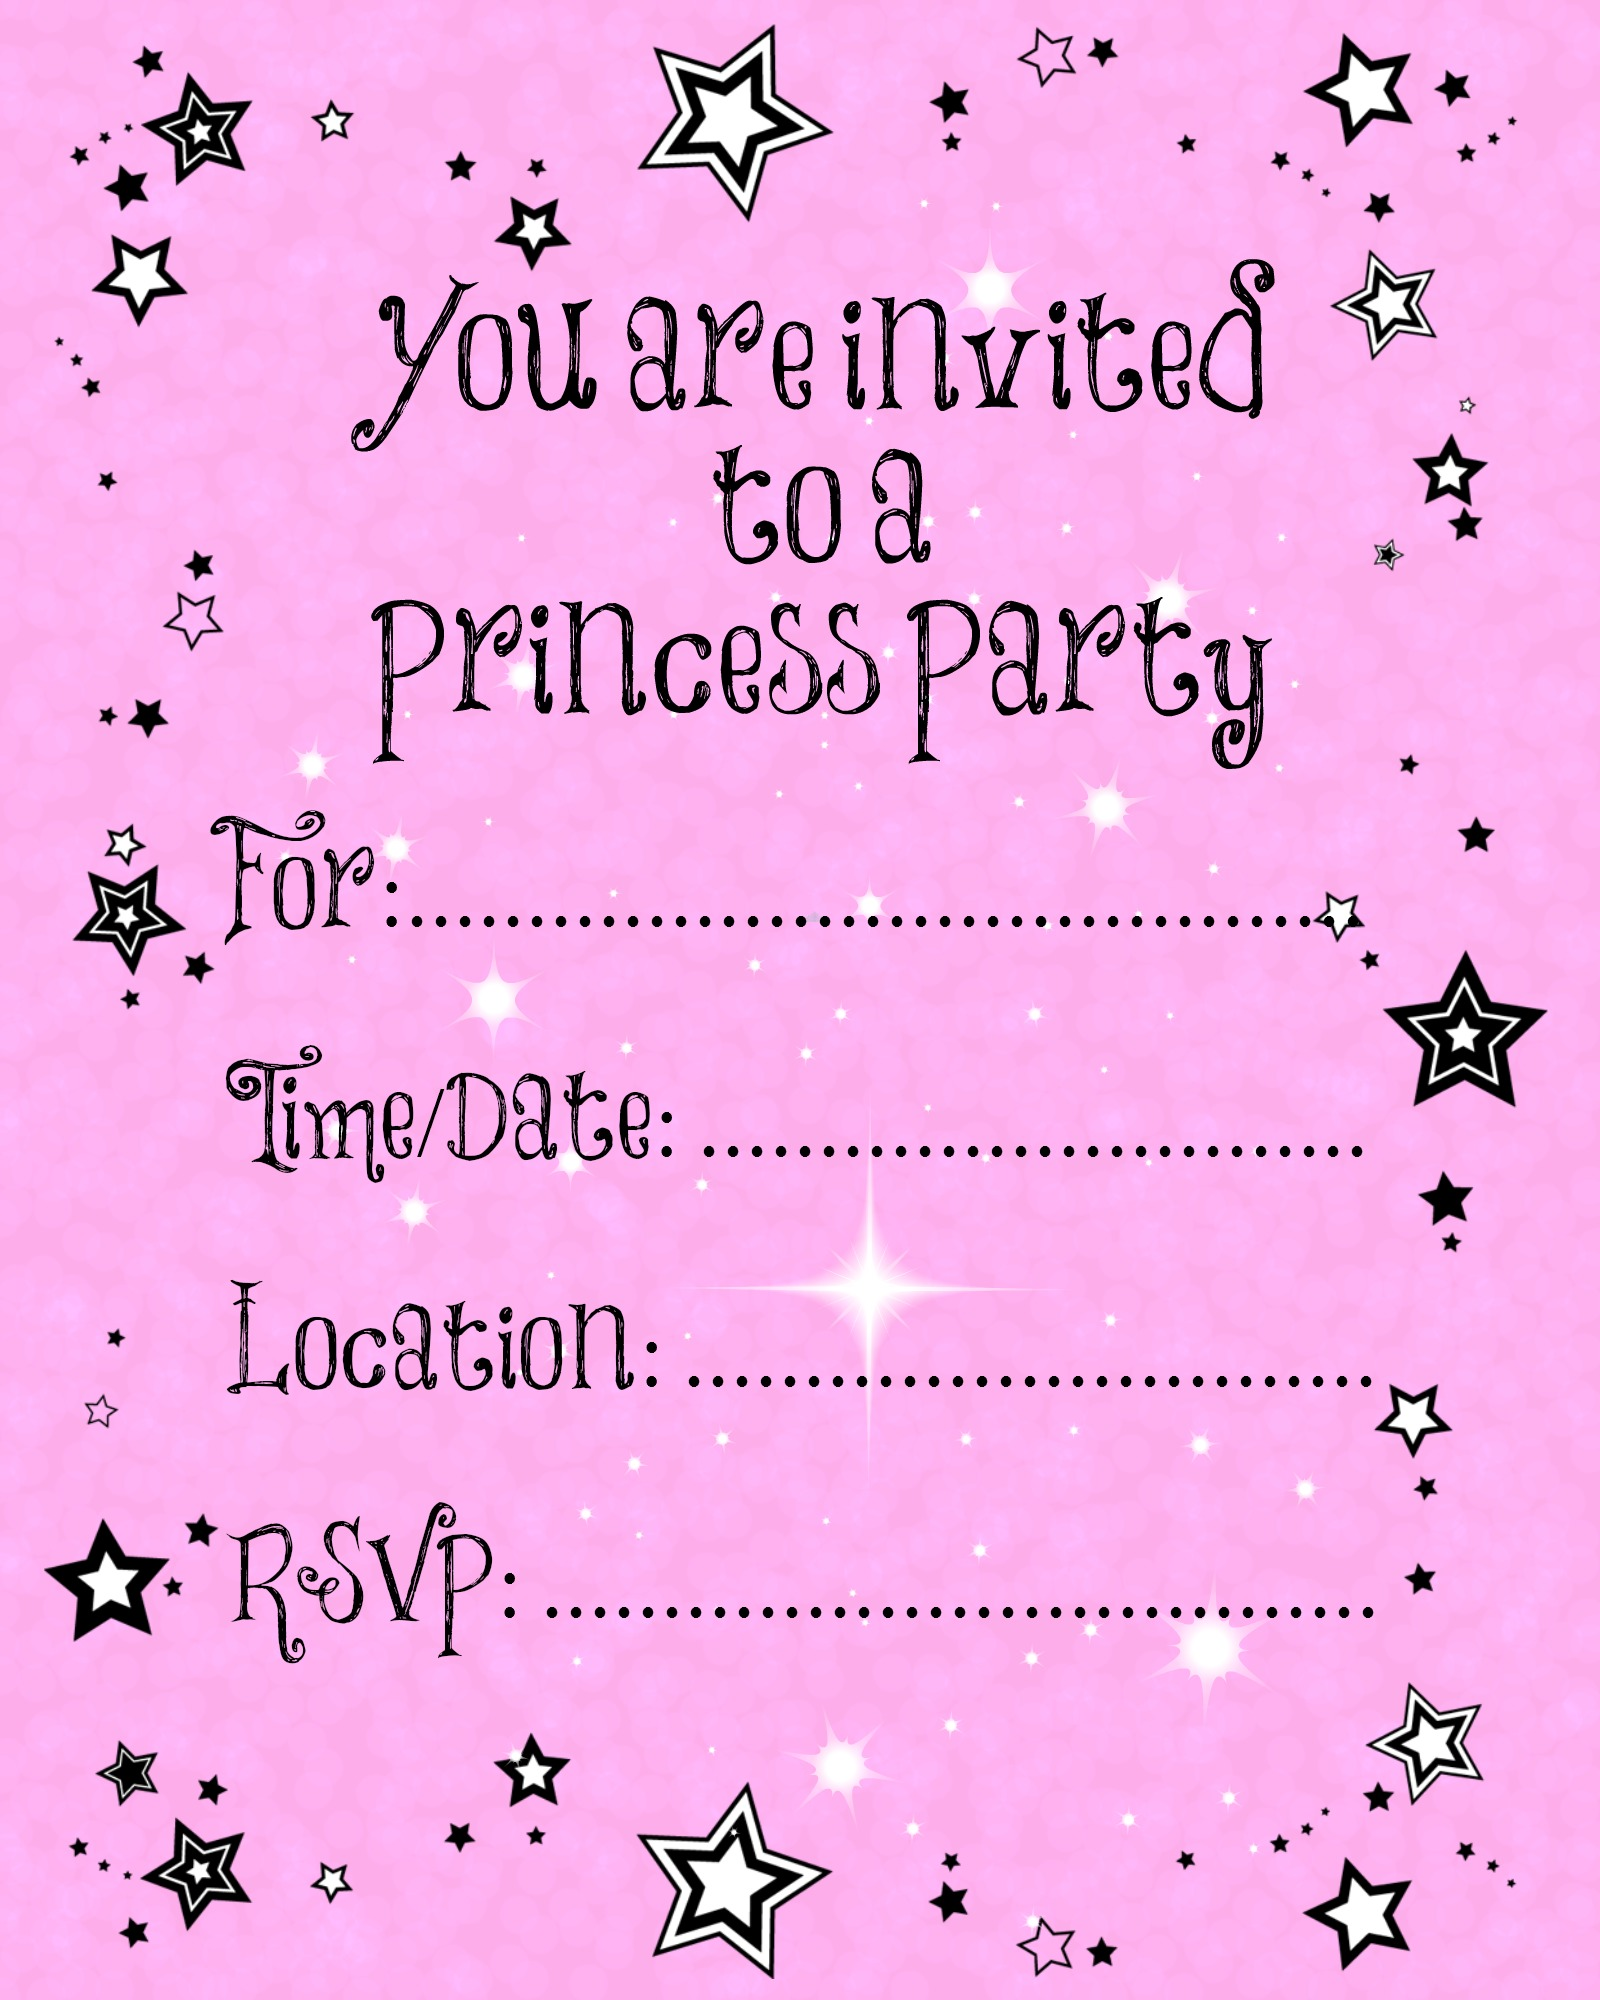 blank birthday card maker free printable ; princess-party-invitations-to-create-your-own-remarkable-Party-invitation-design-ihl16